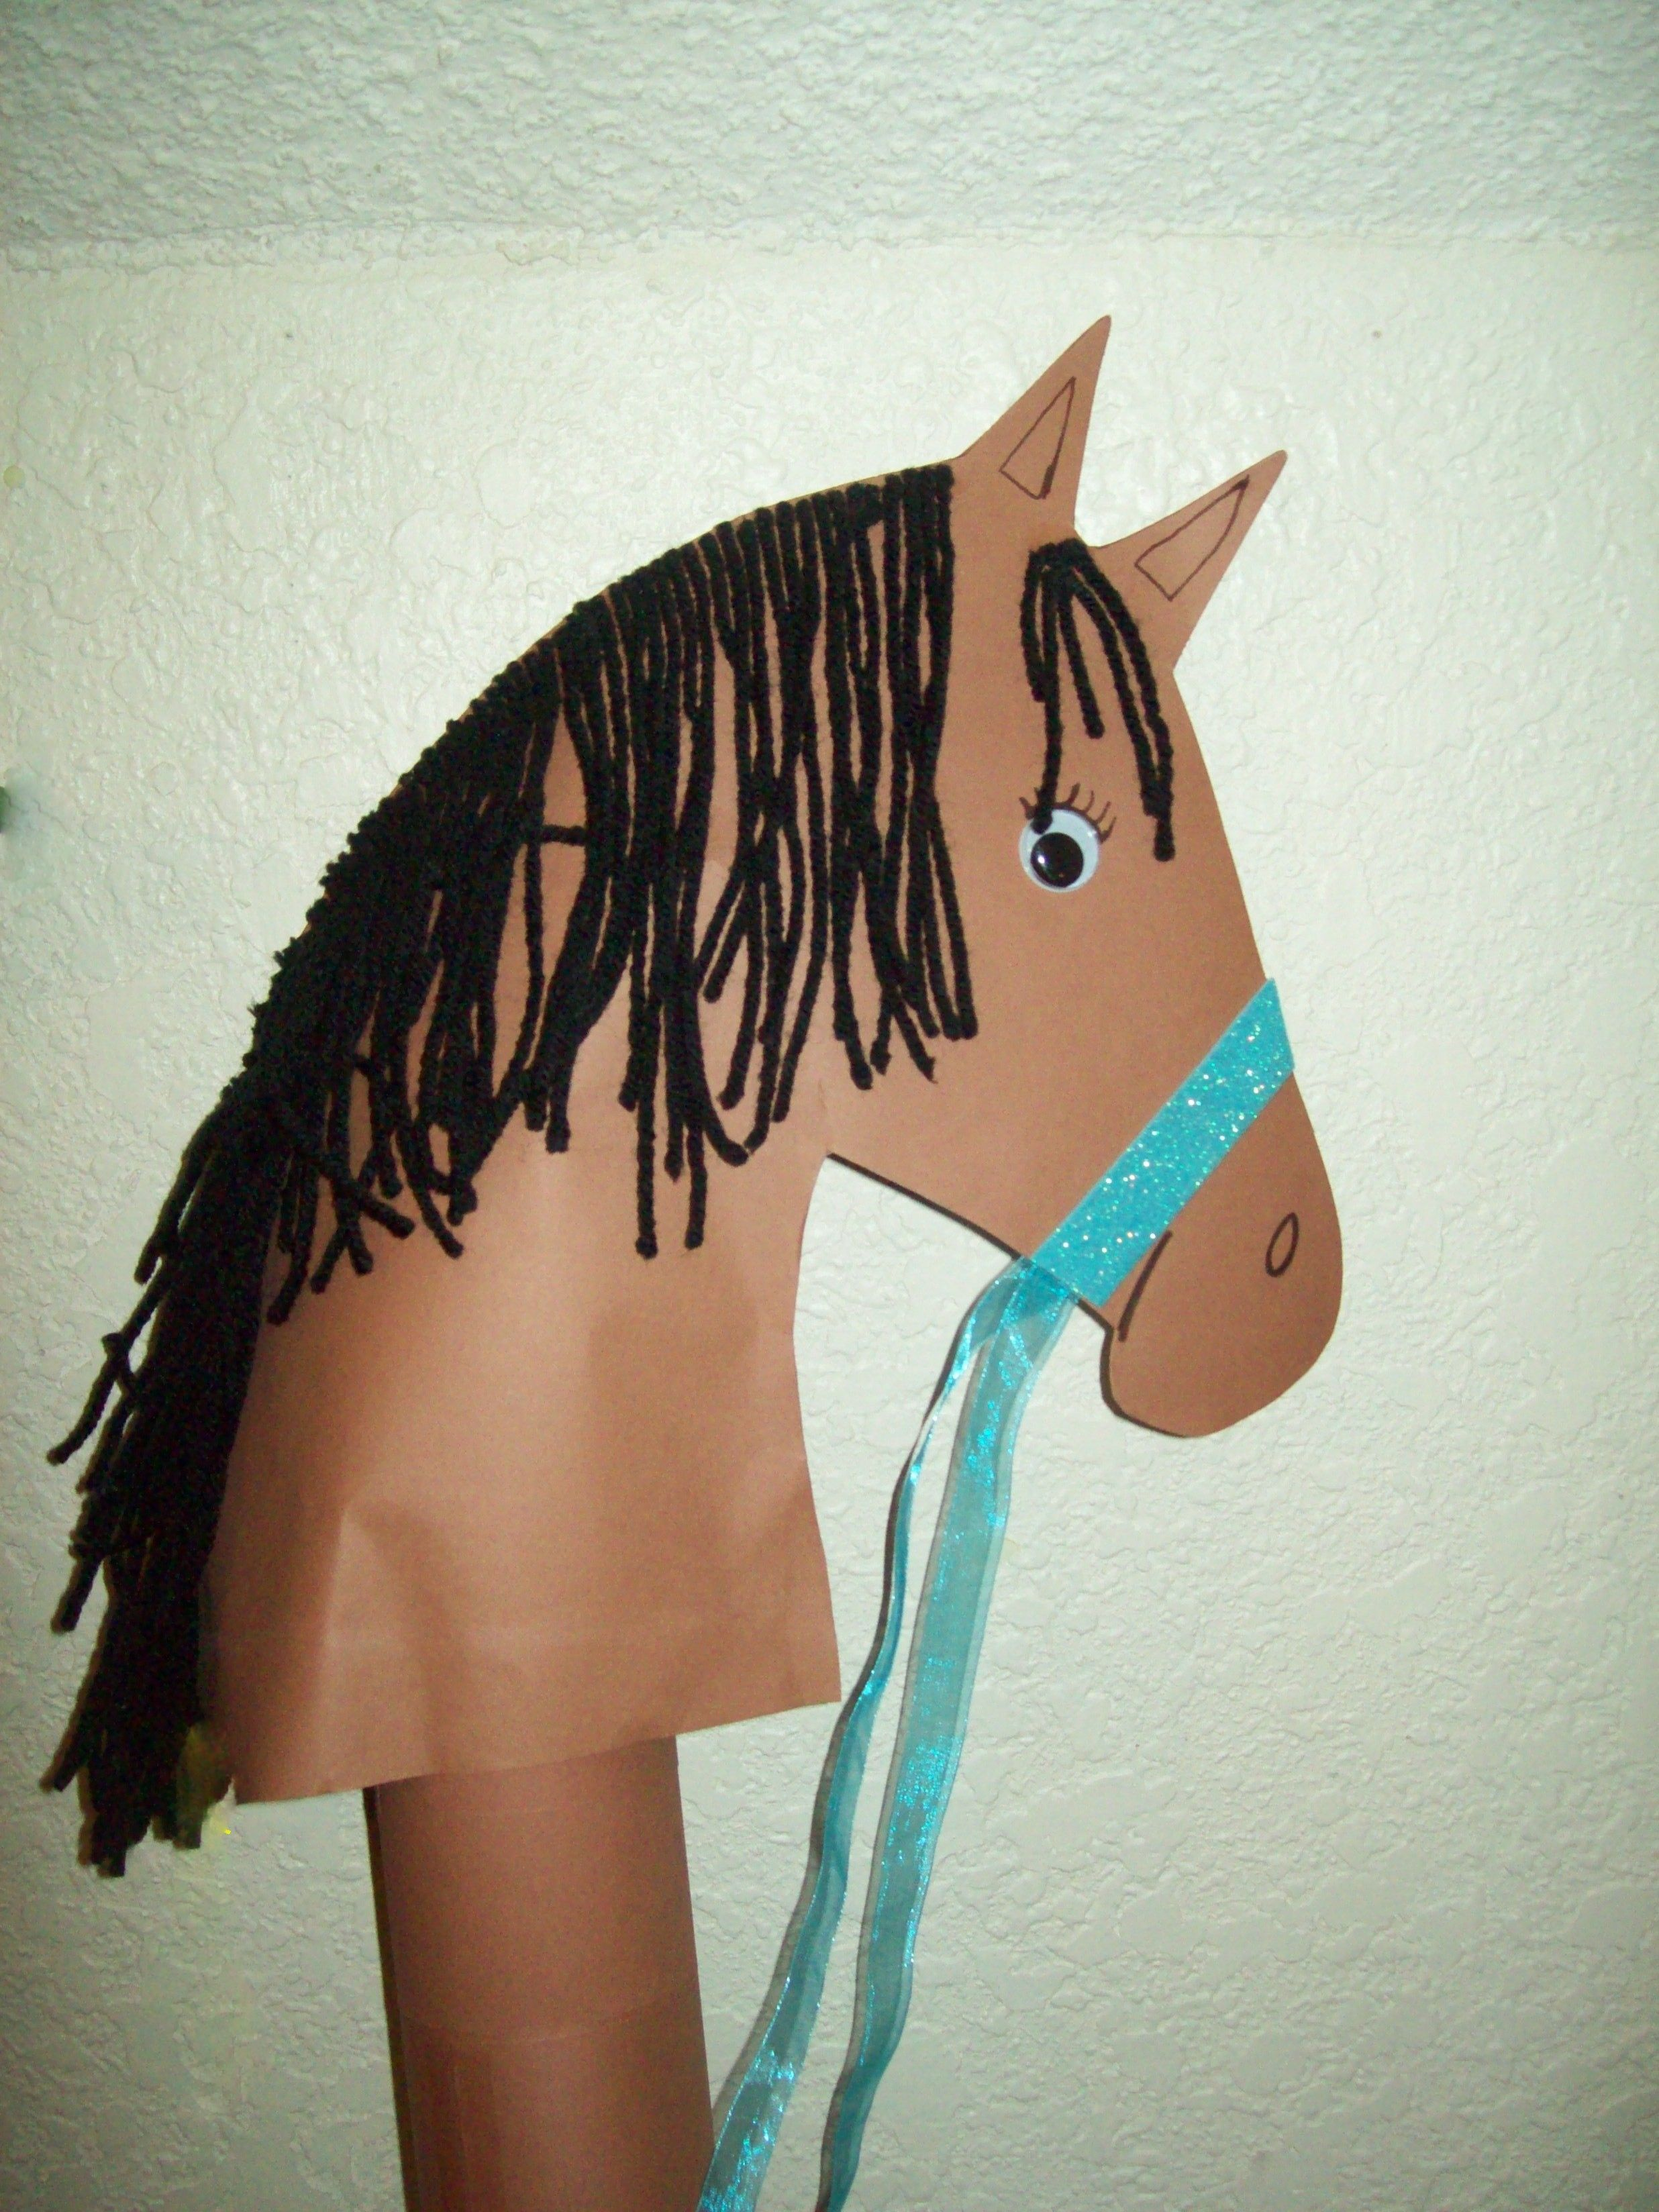 Horse Craft Ideas For Kids Part - 16: Paper Plate And Plastic Plate Horse Craft Ideas Clothespin Horse Crafts  Paper And Paper Bag Horse Craft Ideas Handprint And Footprint Horse Art  Activities ...